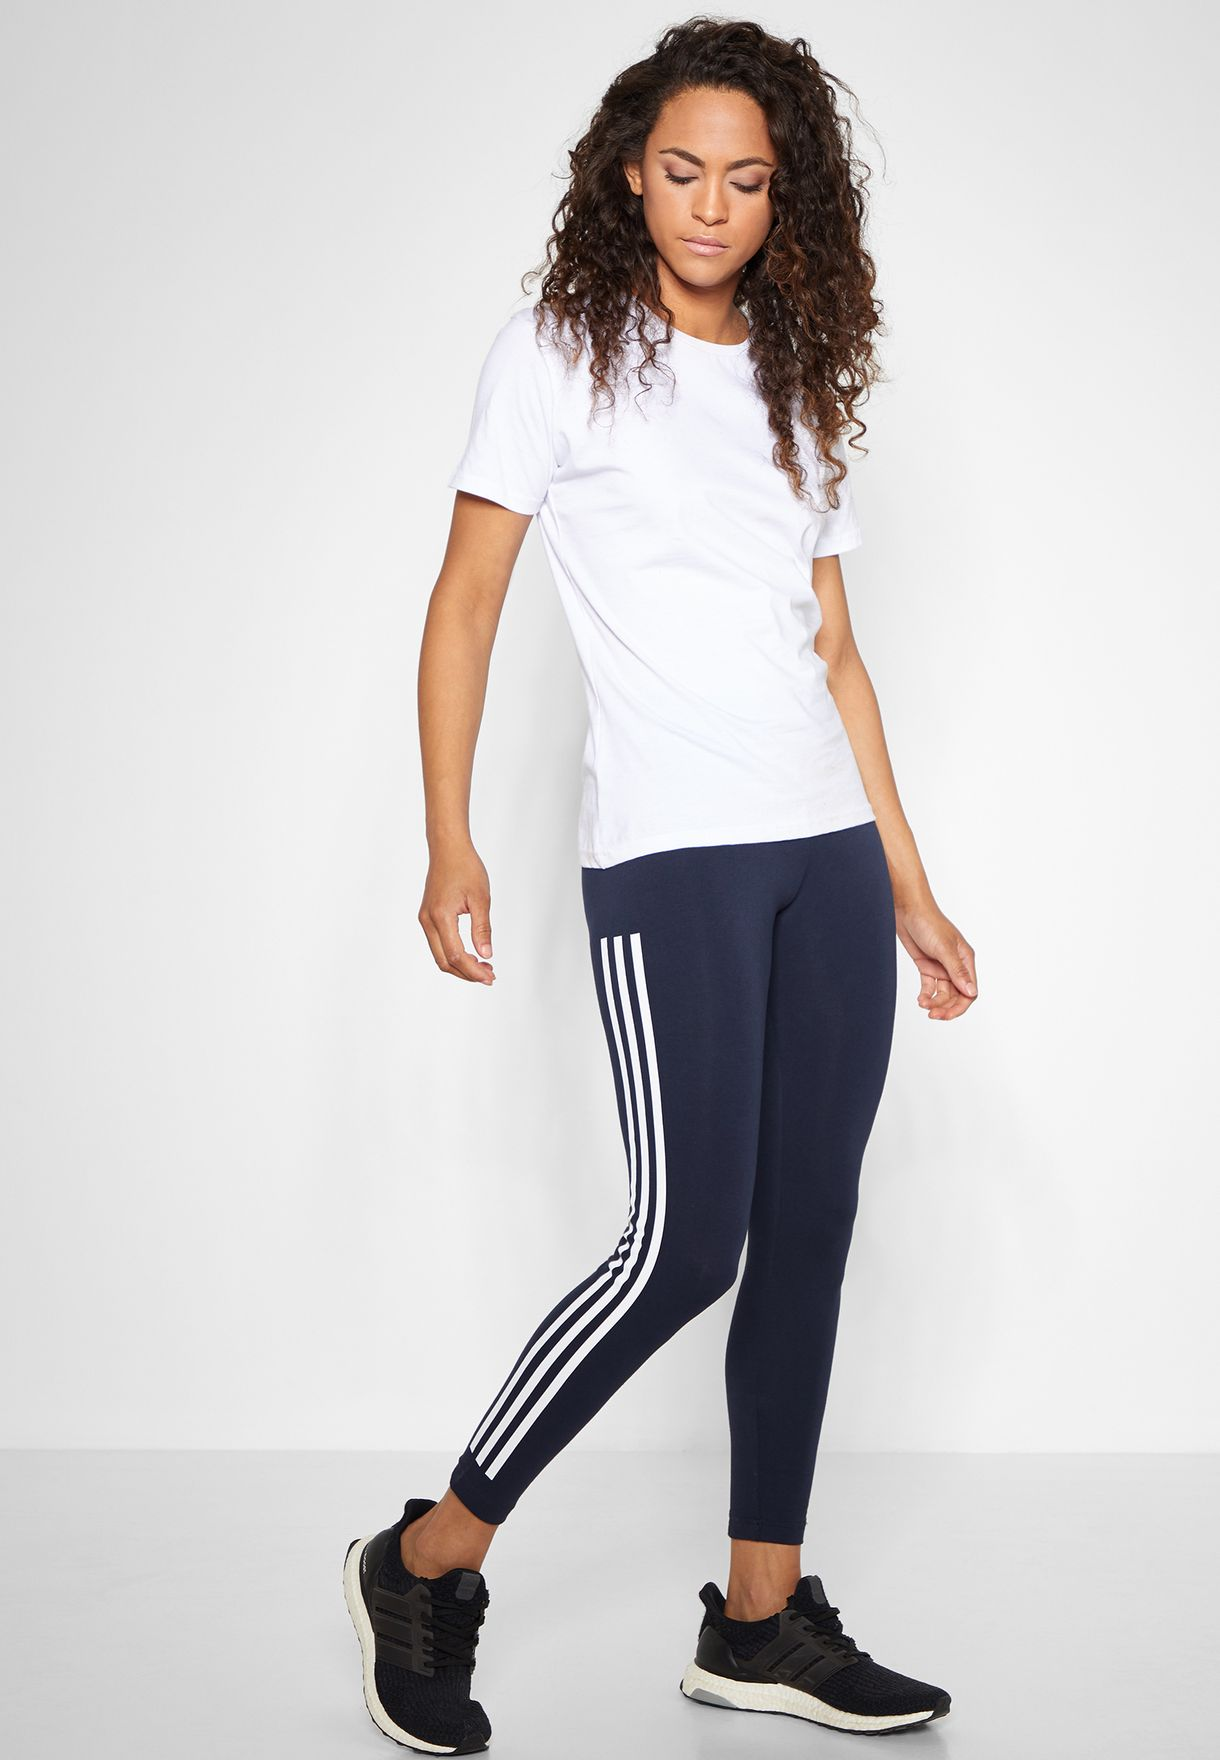 Must Have 3 Stripe Leggings